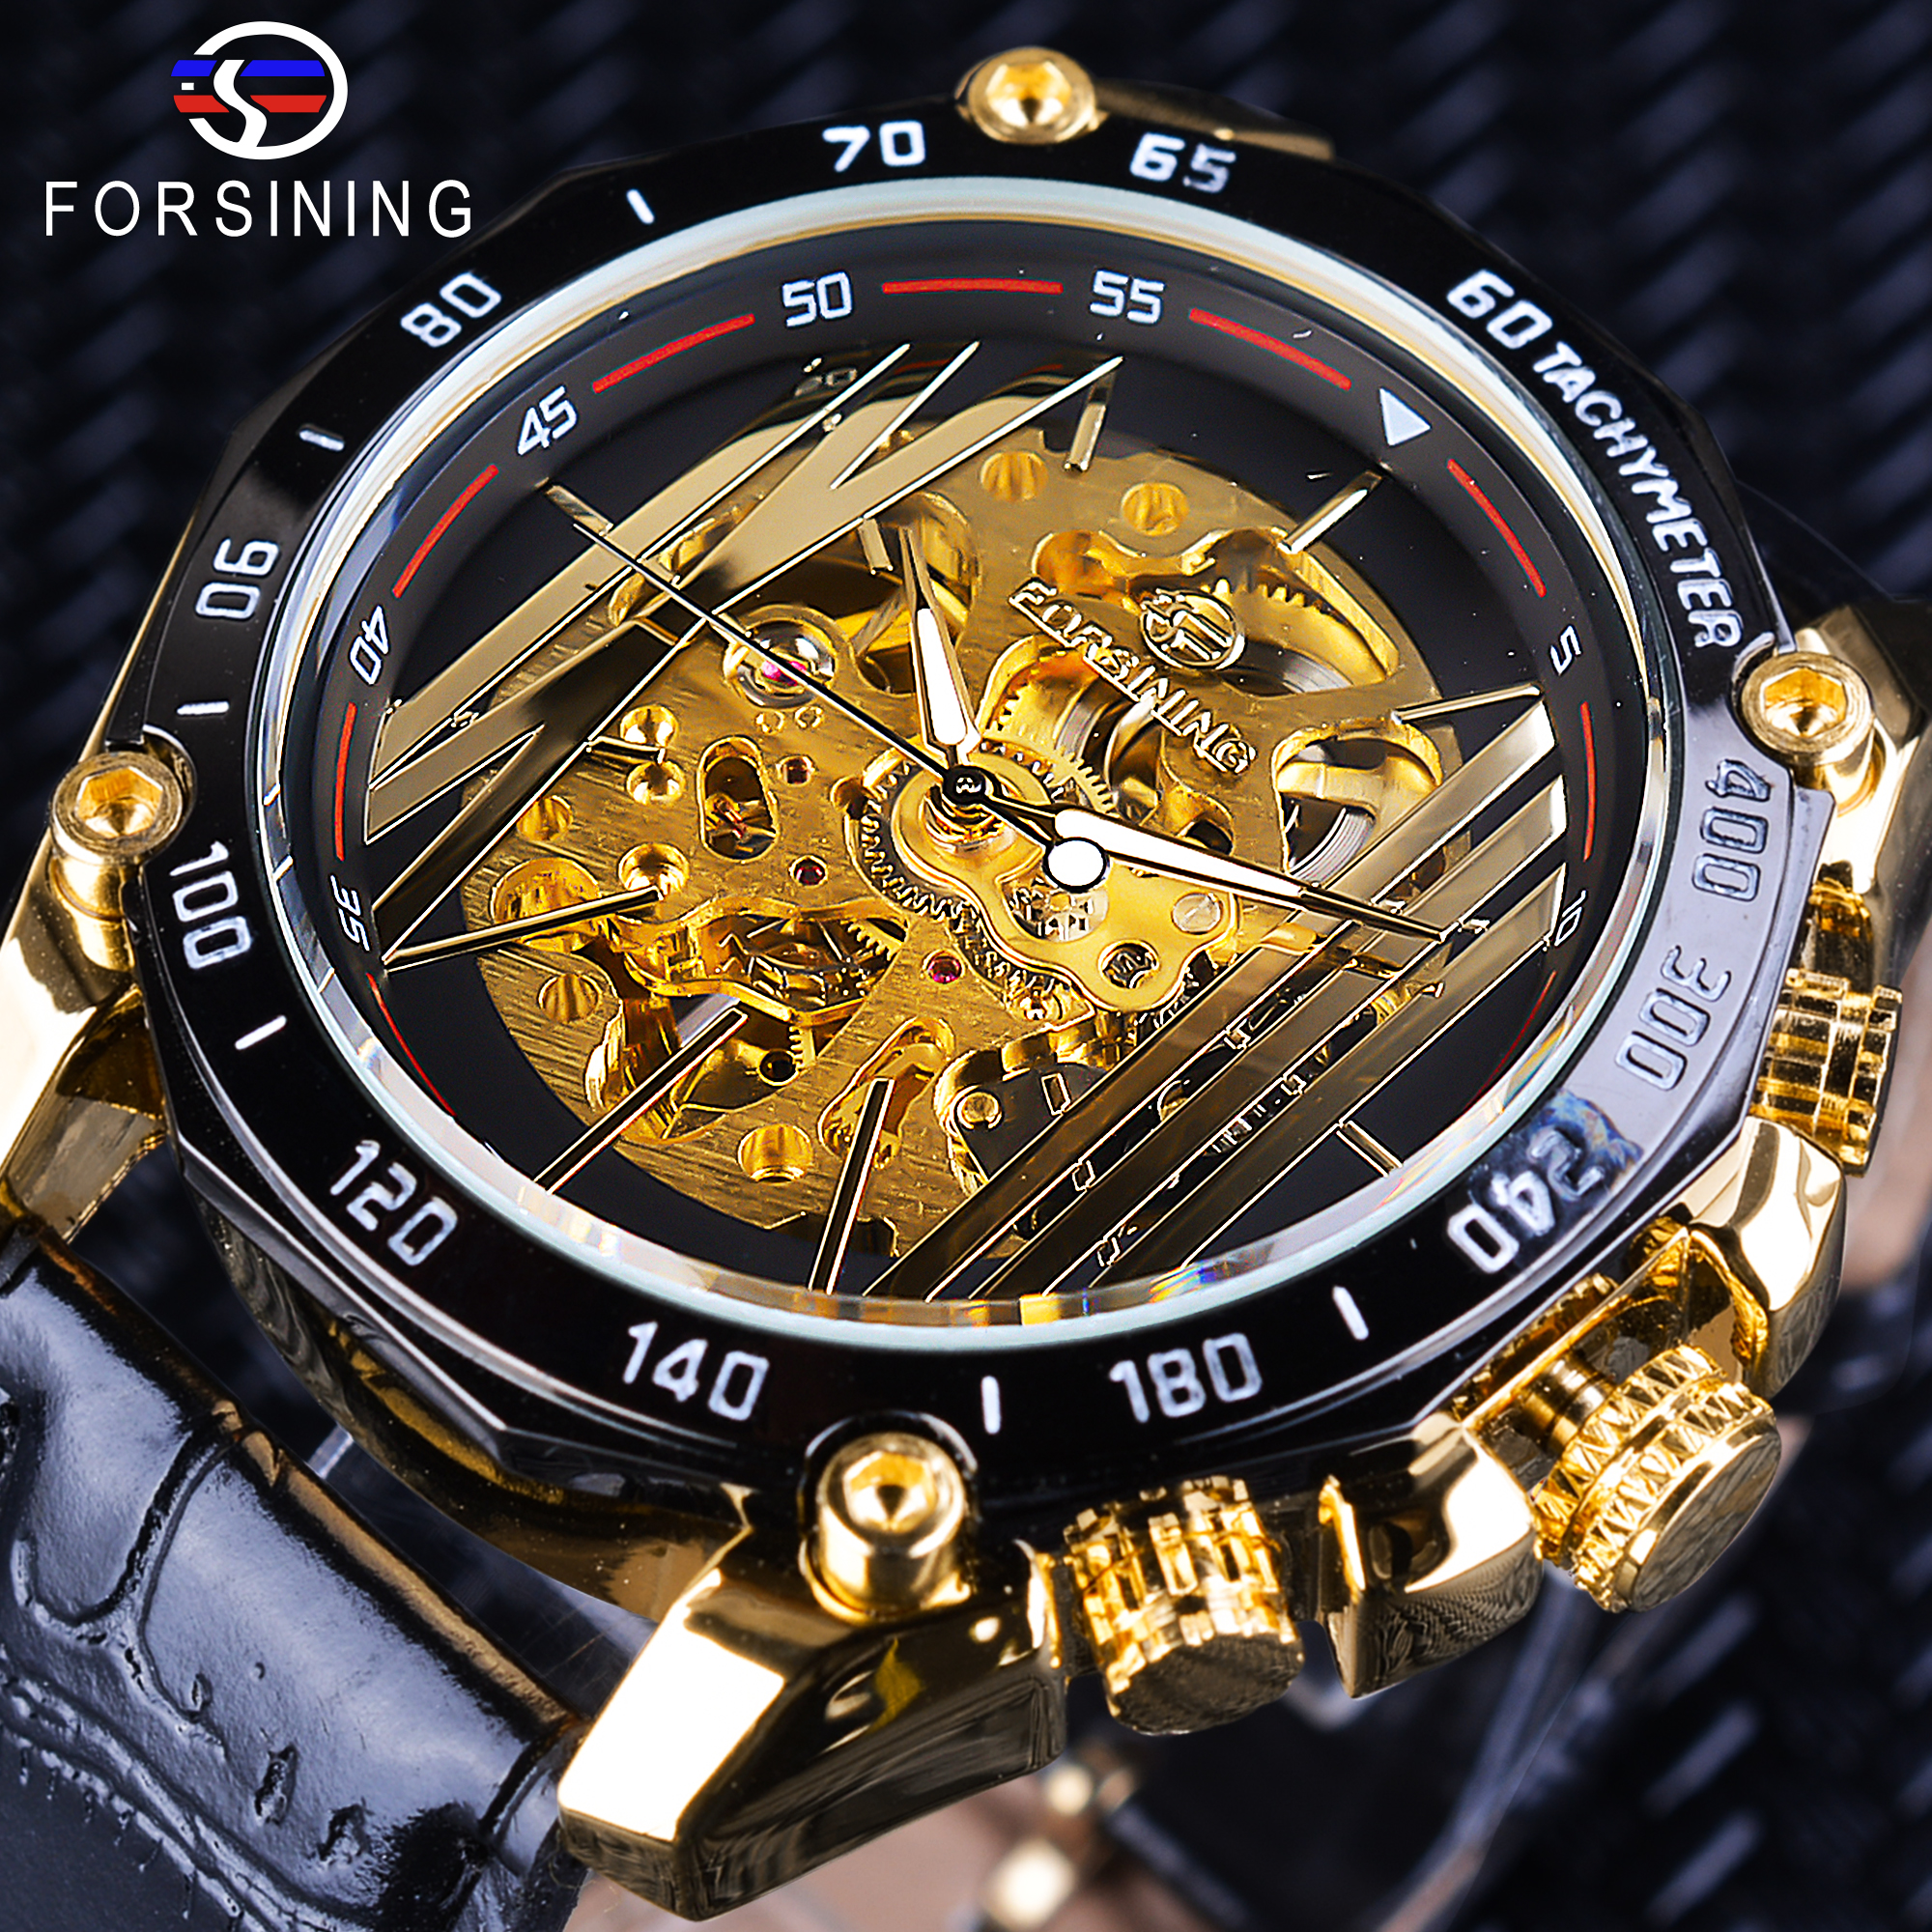 Forsining Big Dial Steampunk Design Luxury Golden Gear Movement Men Creative Openwork Watches Automatic font b